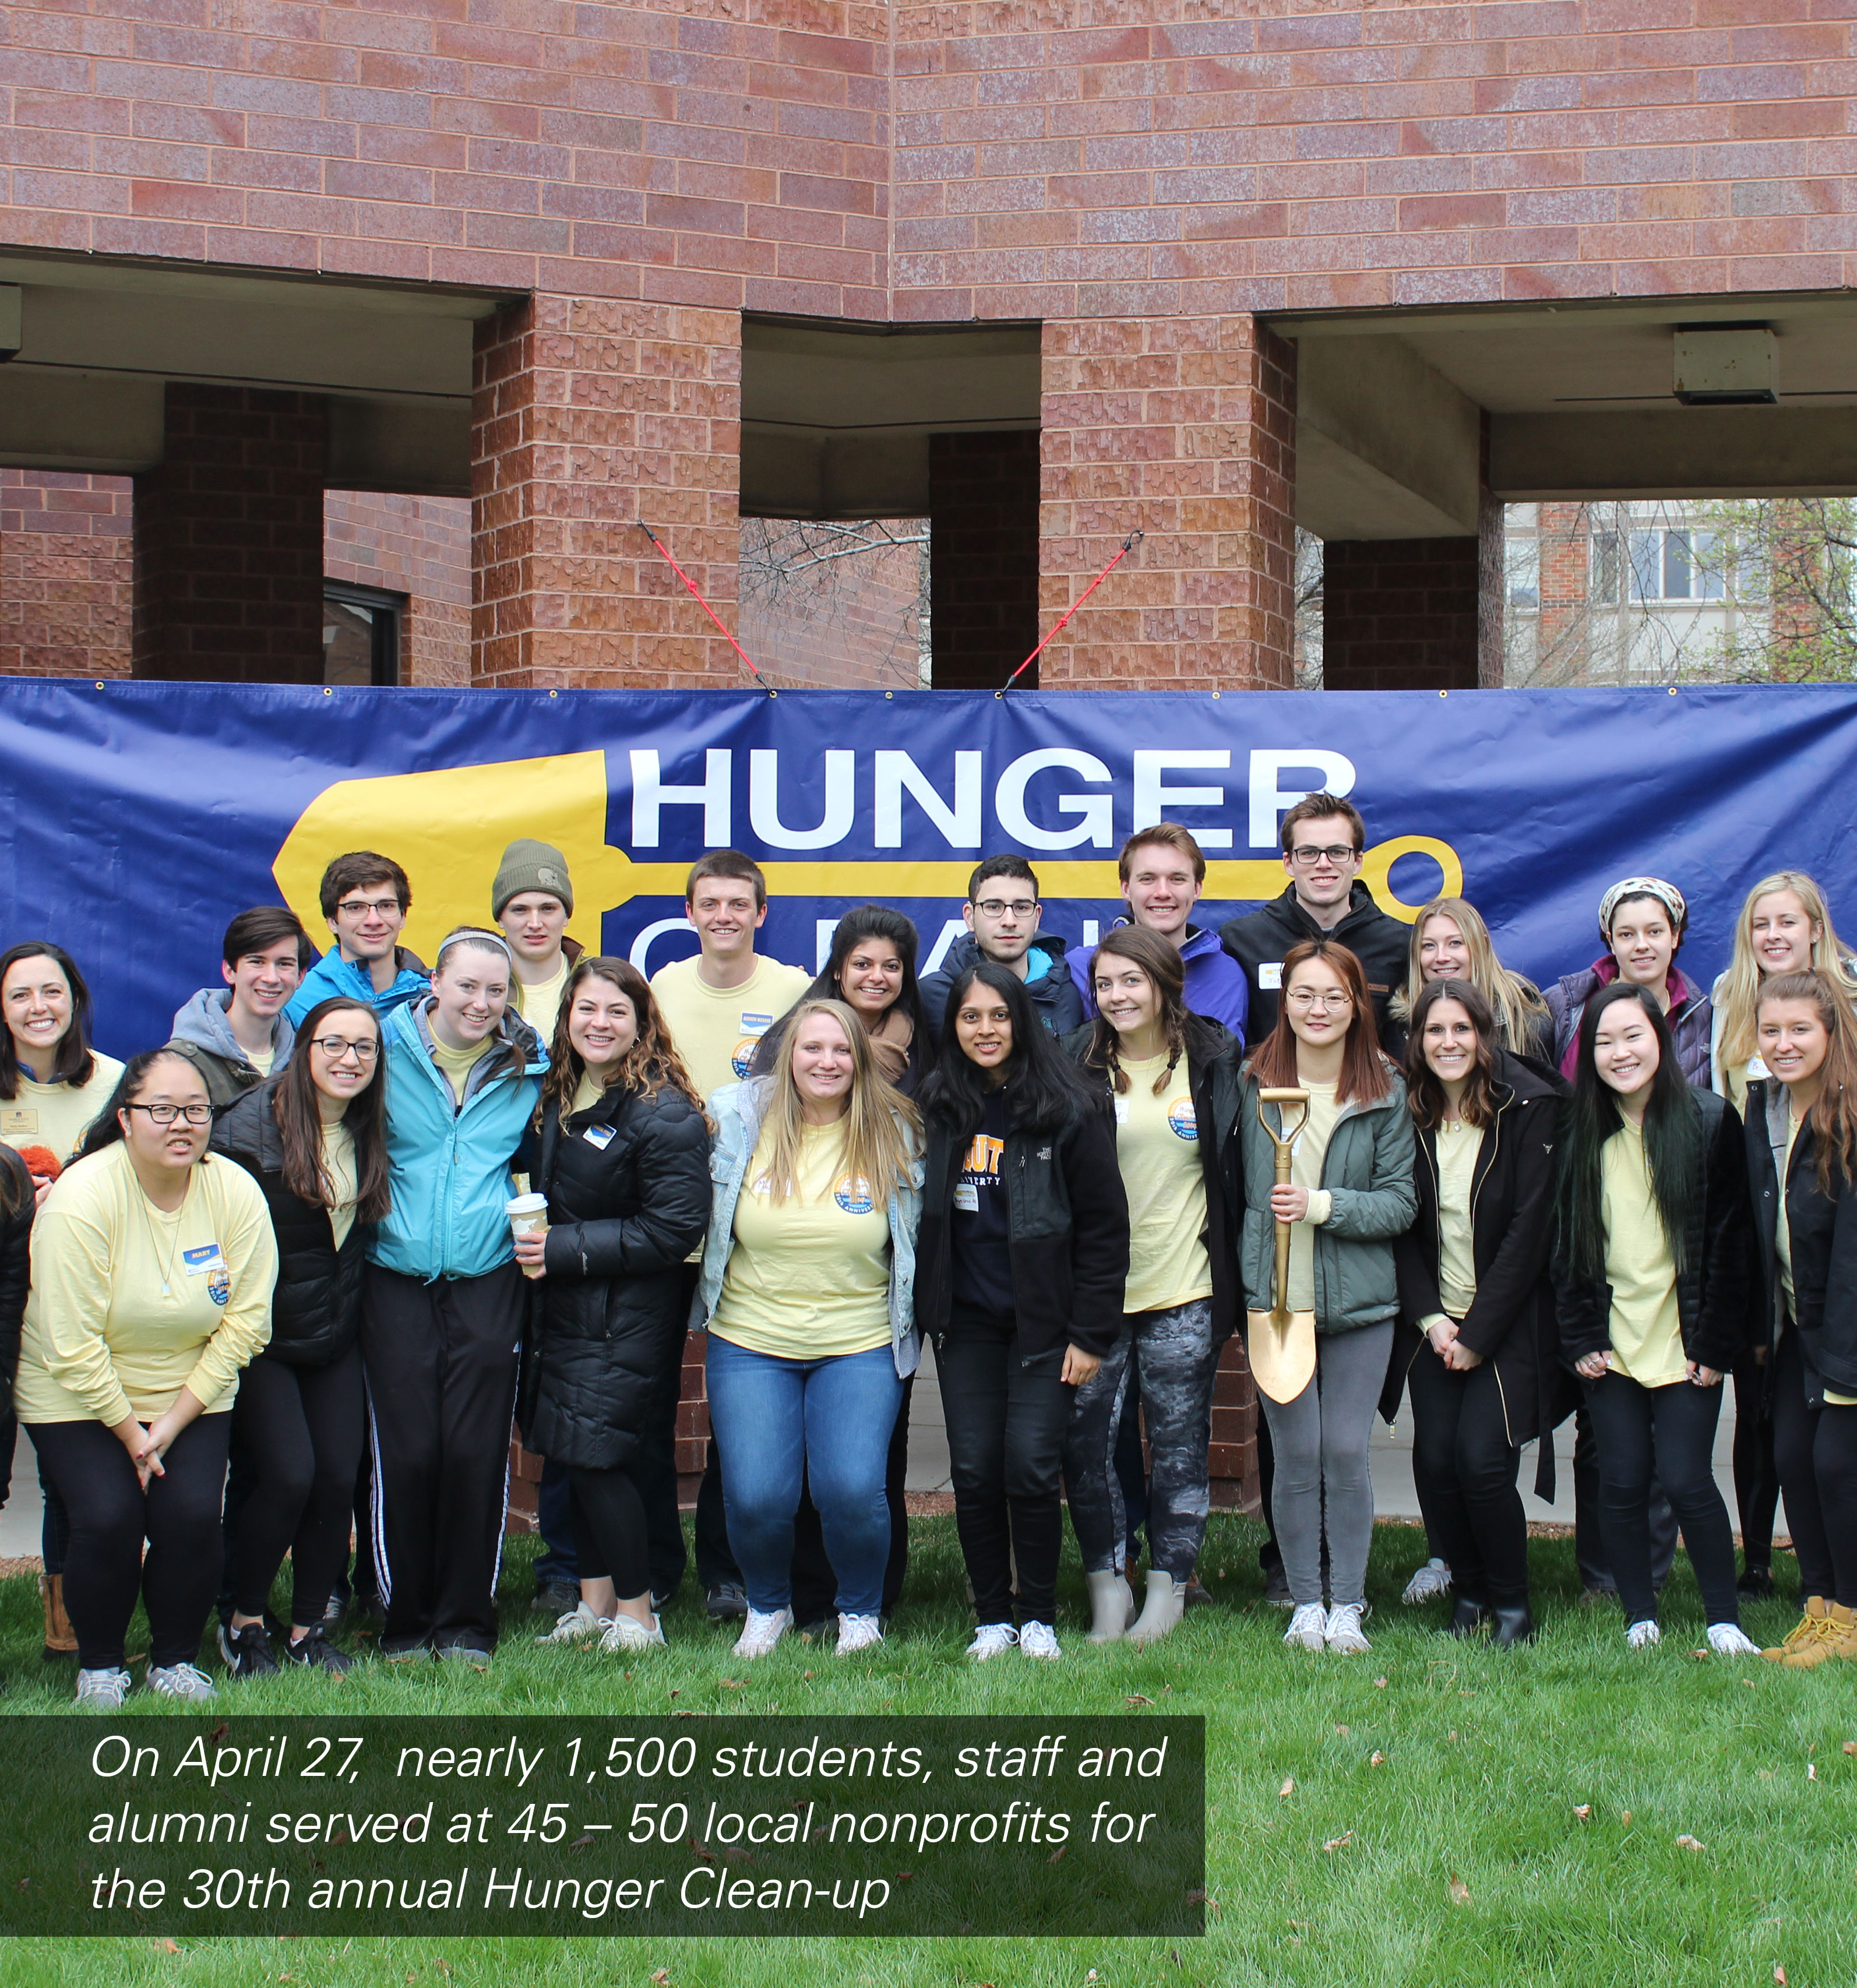 Hunger Clean-Up